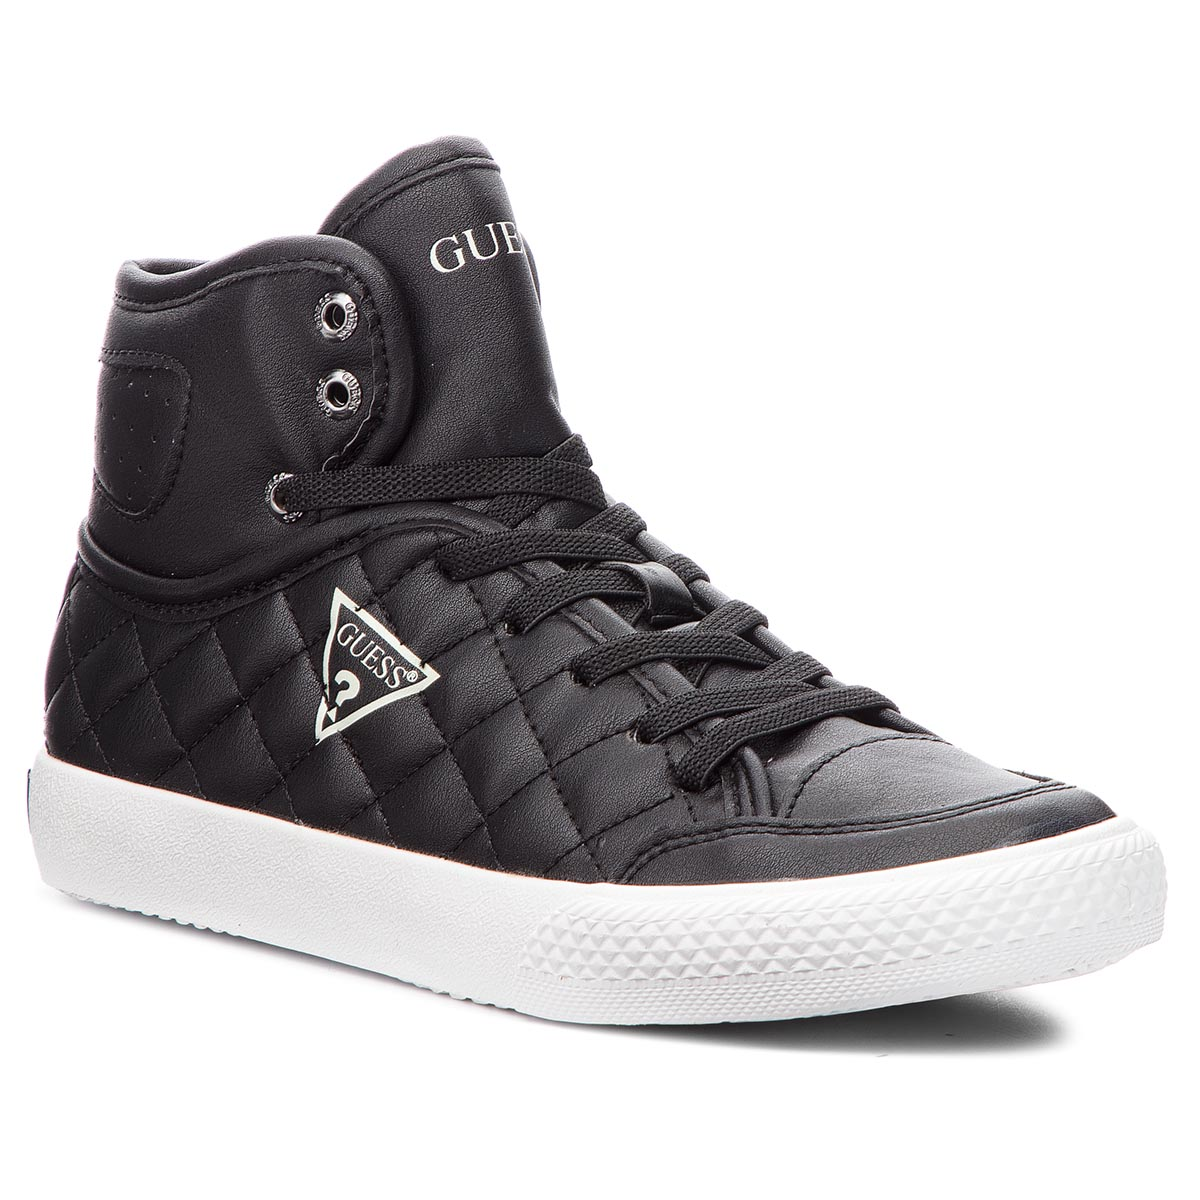 Sneakers GUESS - FJVNN4 ELE12 001